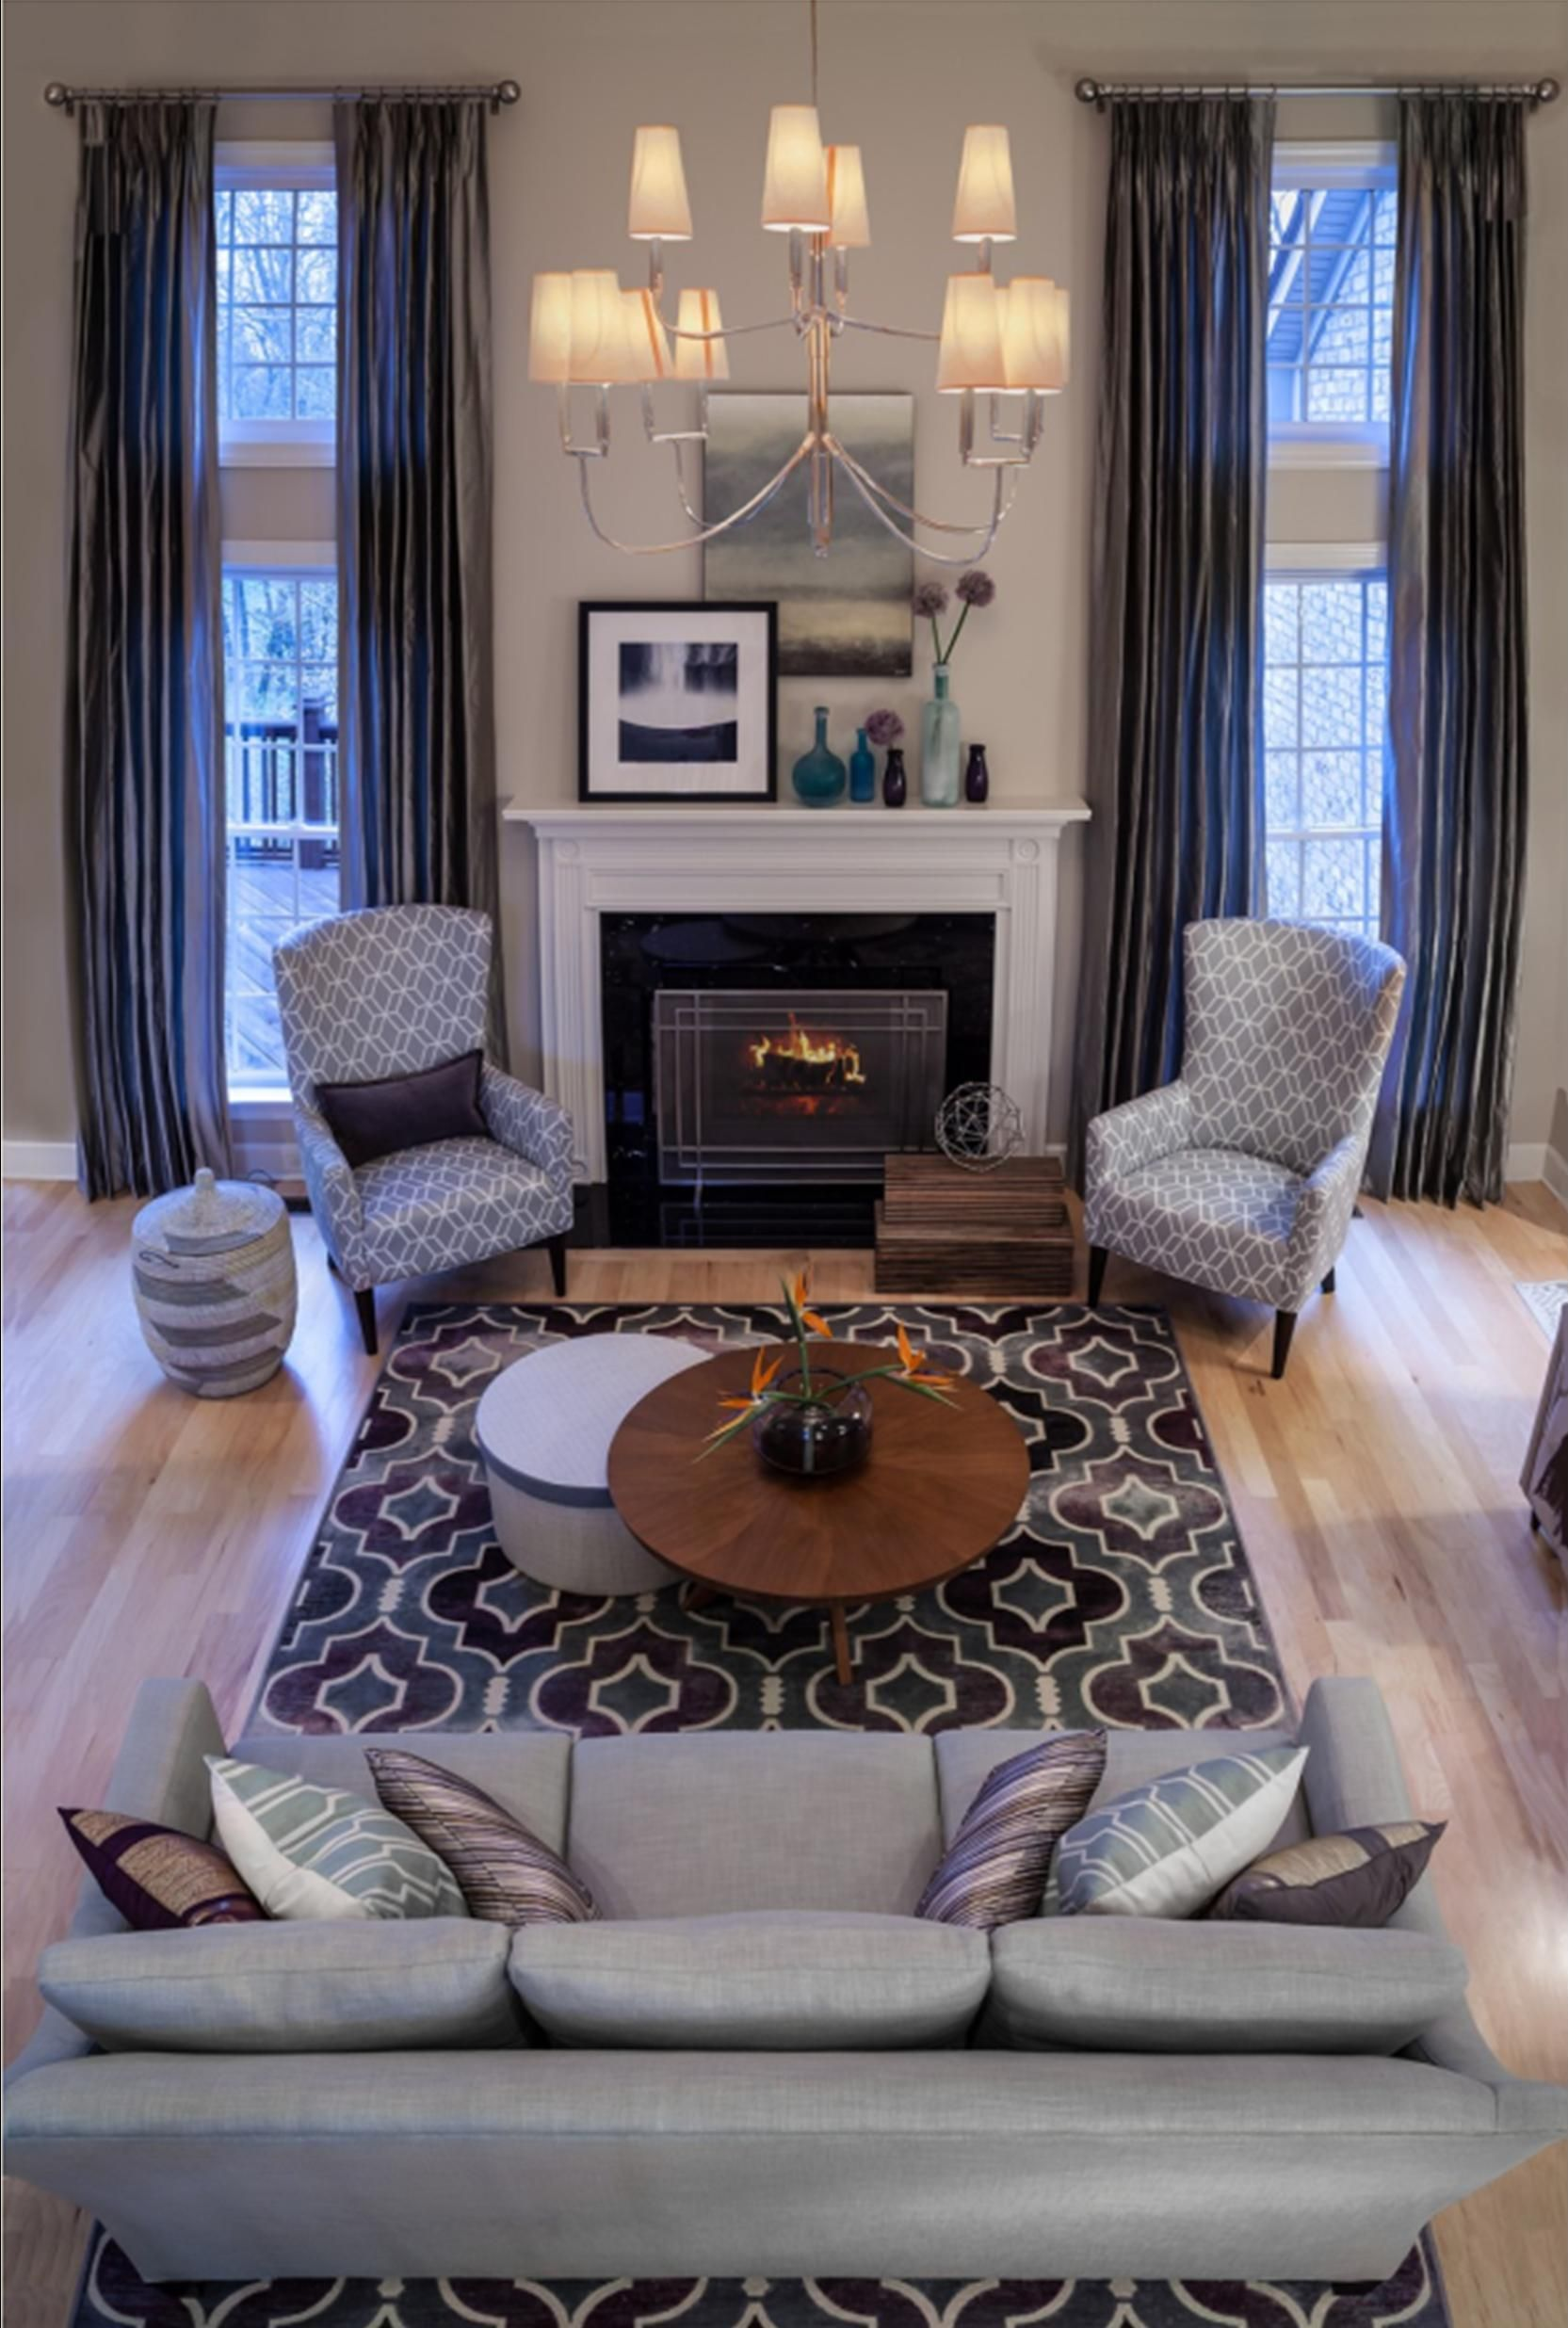 About eclectic interior design ideas for your best home living spaces livingroom decor homedecor also mind blowing rh pinterest